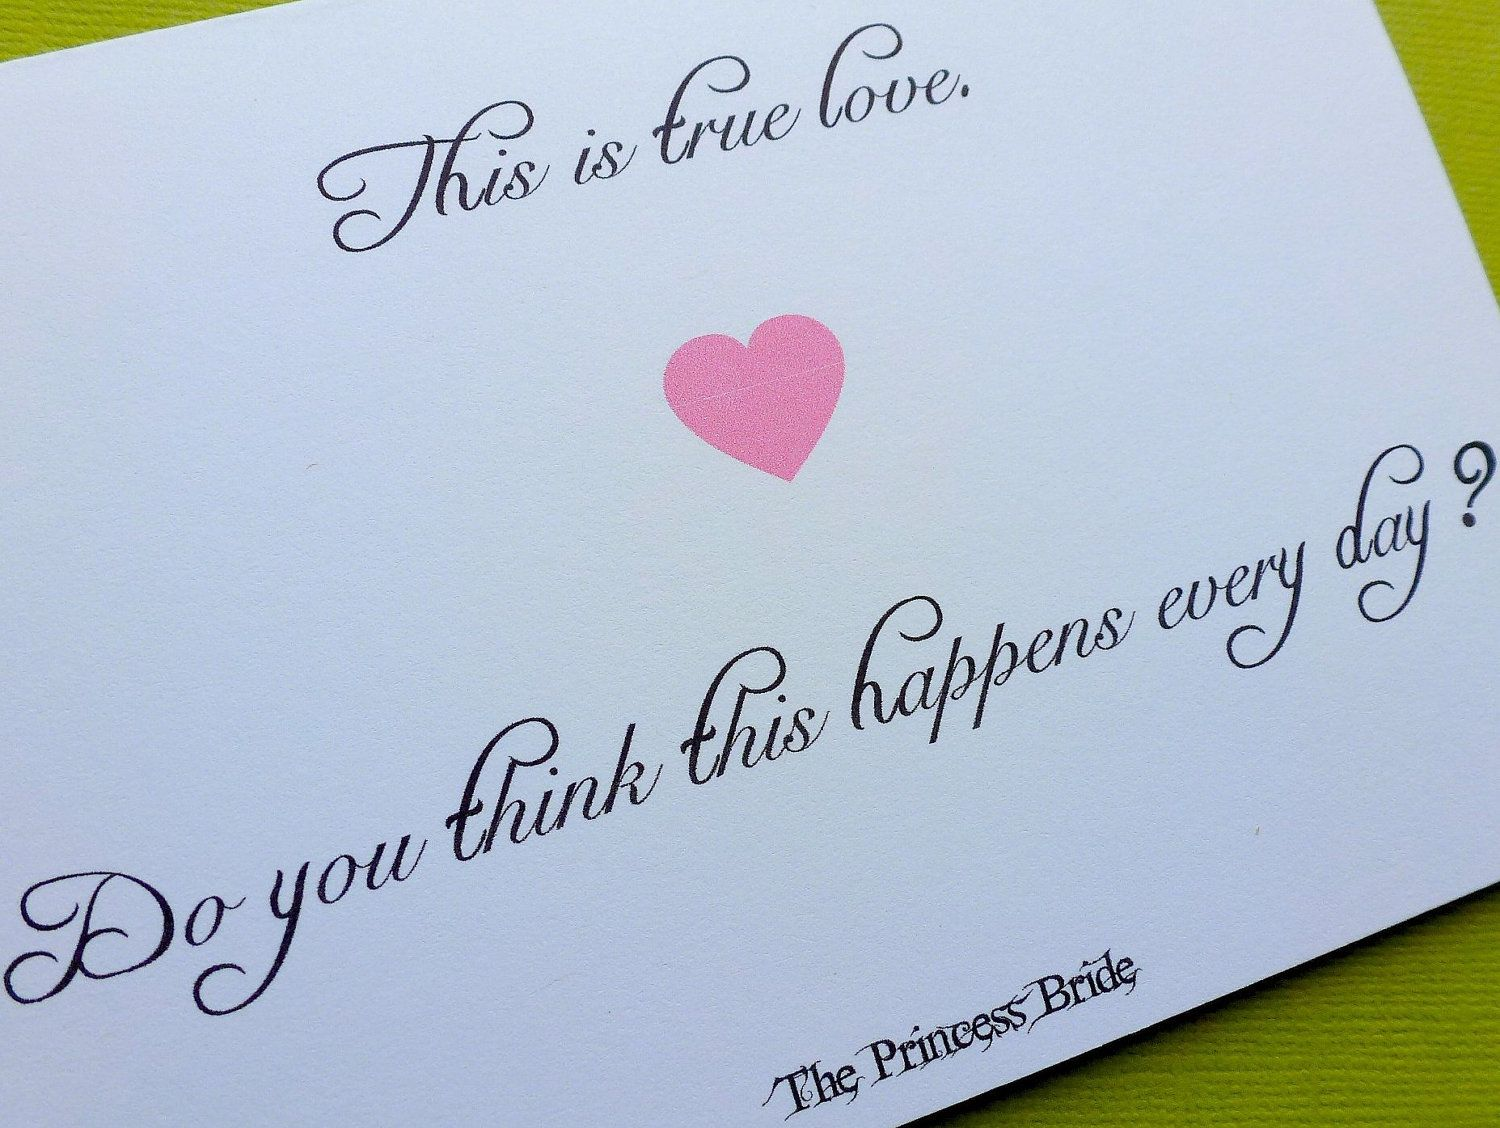 wedding anniversary card pictures%0A The Princess Bride Card Notecard  This is True Love  Quote Quotation   Wedding